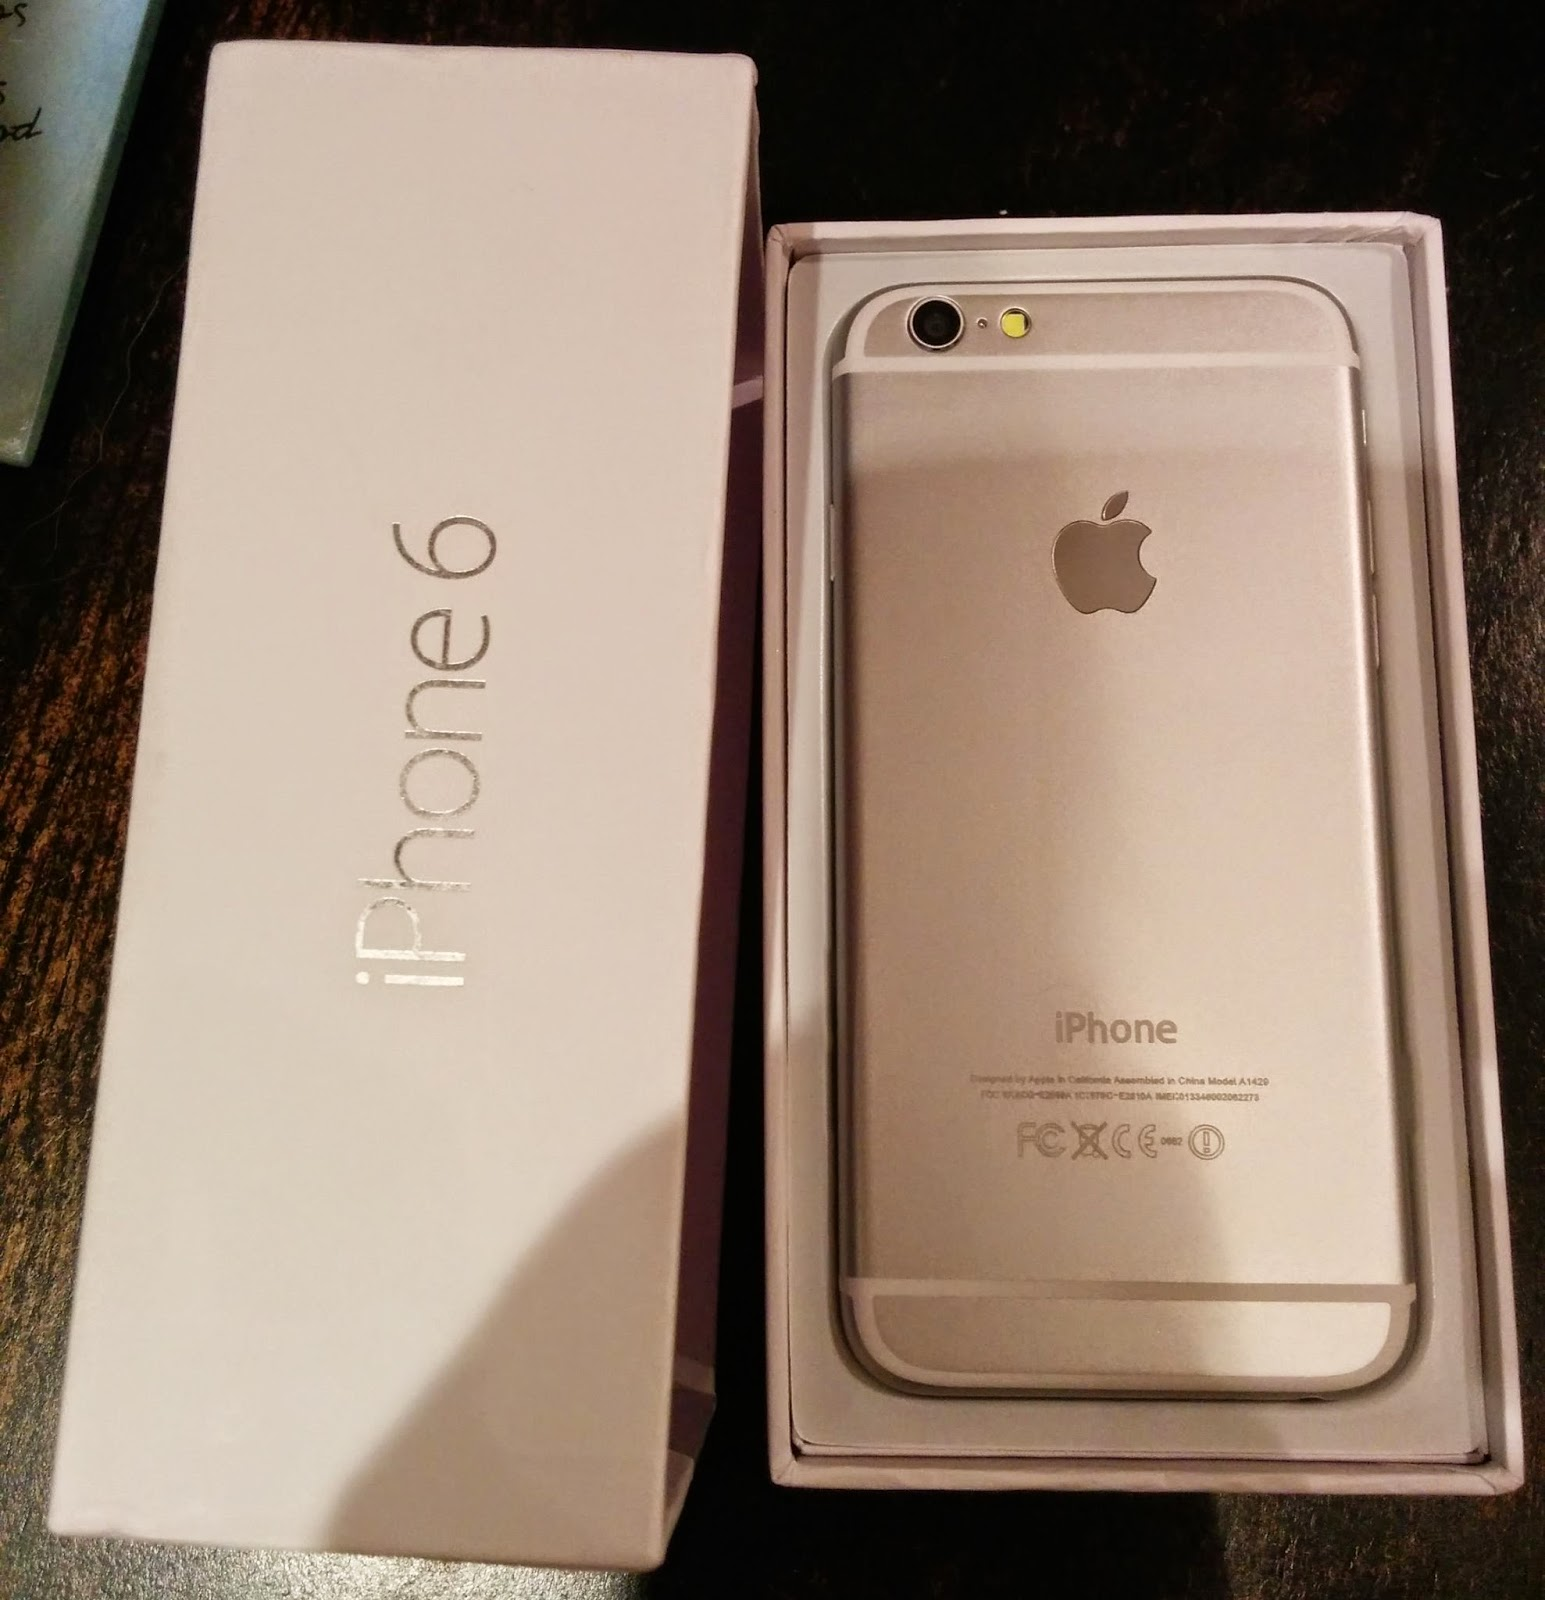 Aliexpress Uk Review Iphone 6 Replica From China I6